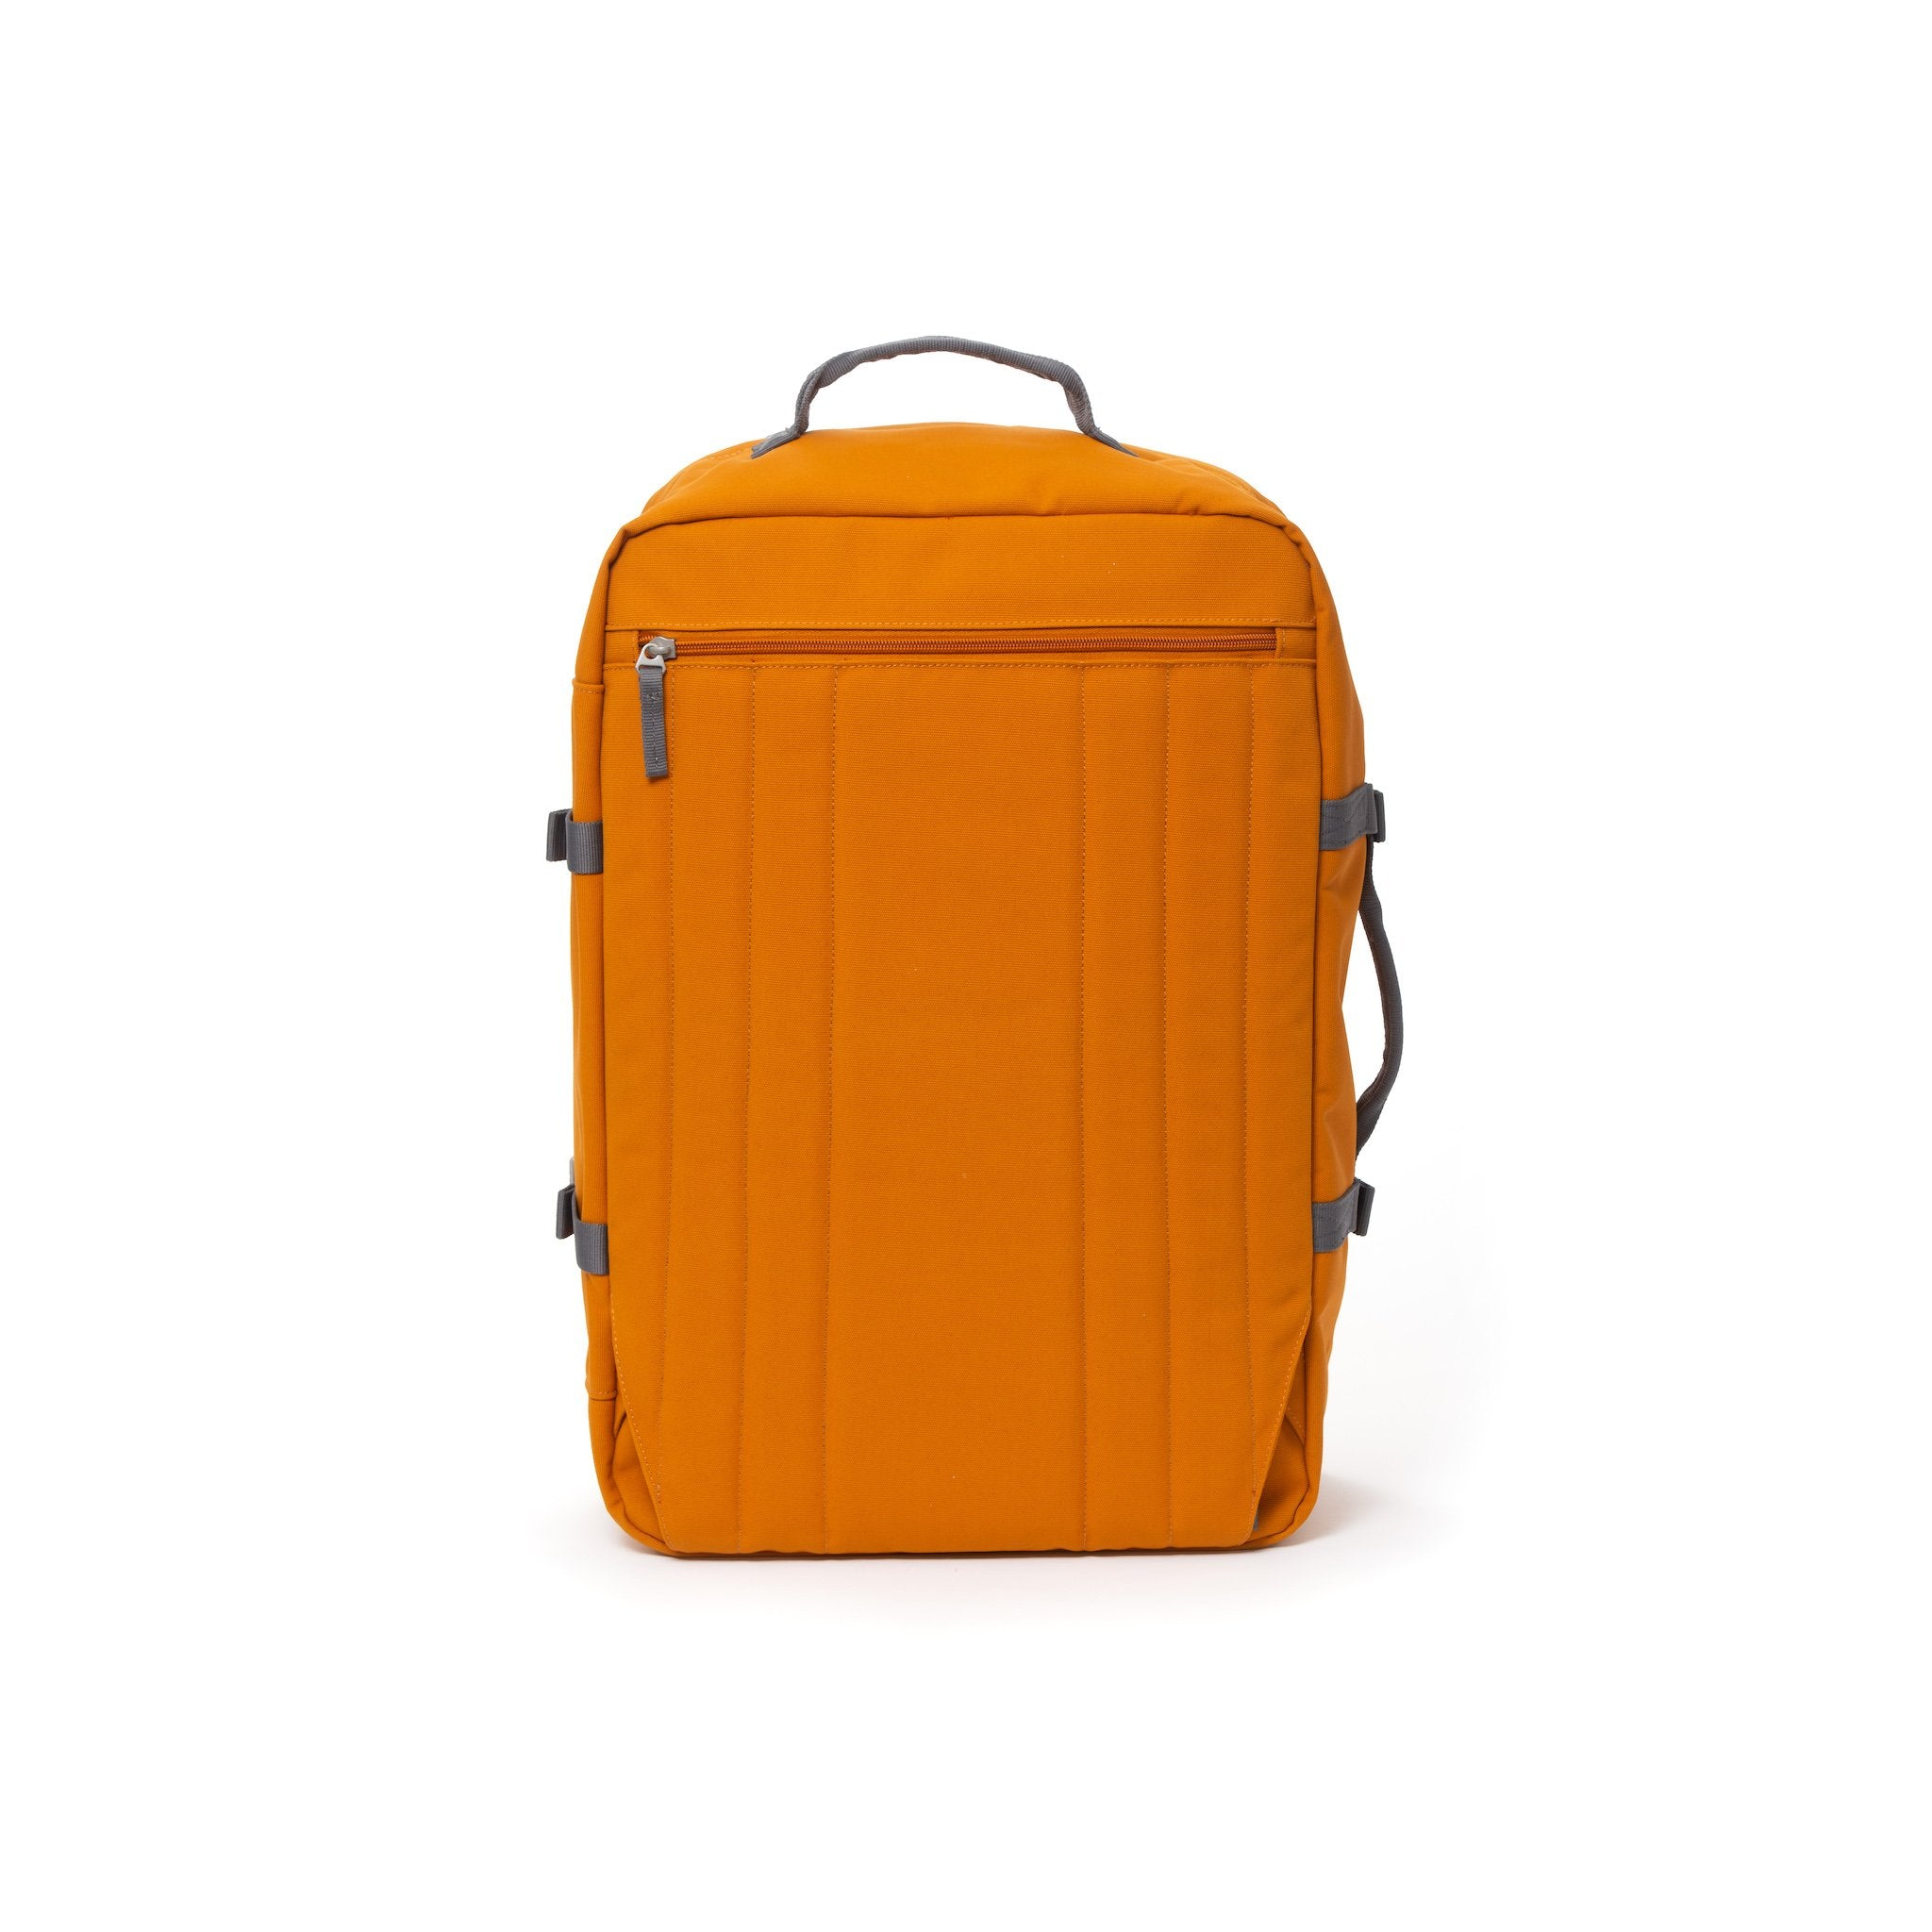 Orange travel backpack with hidden shoulder straps.